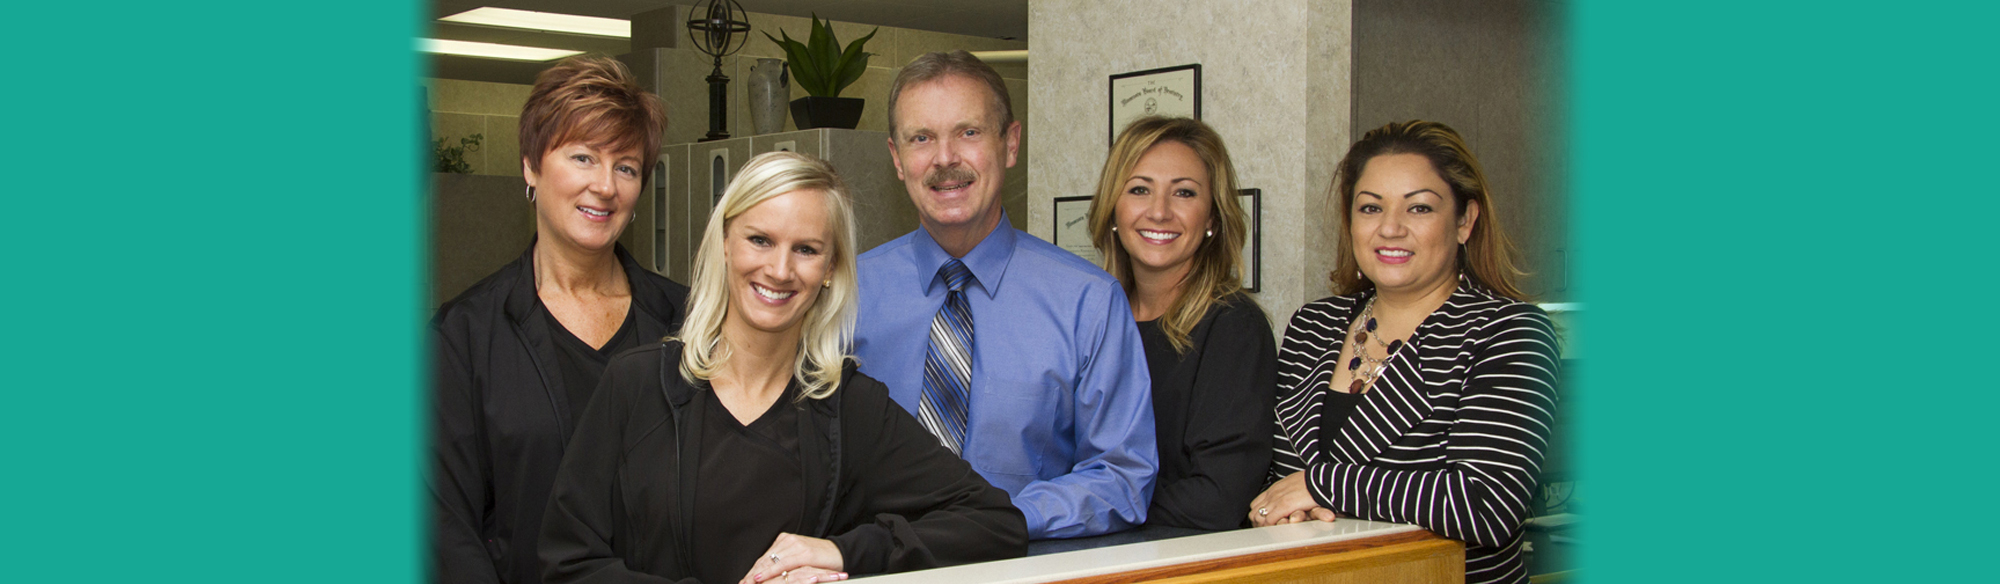 Bjerke Dental Family Dentisty